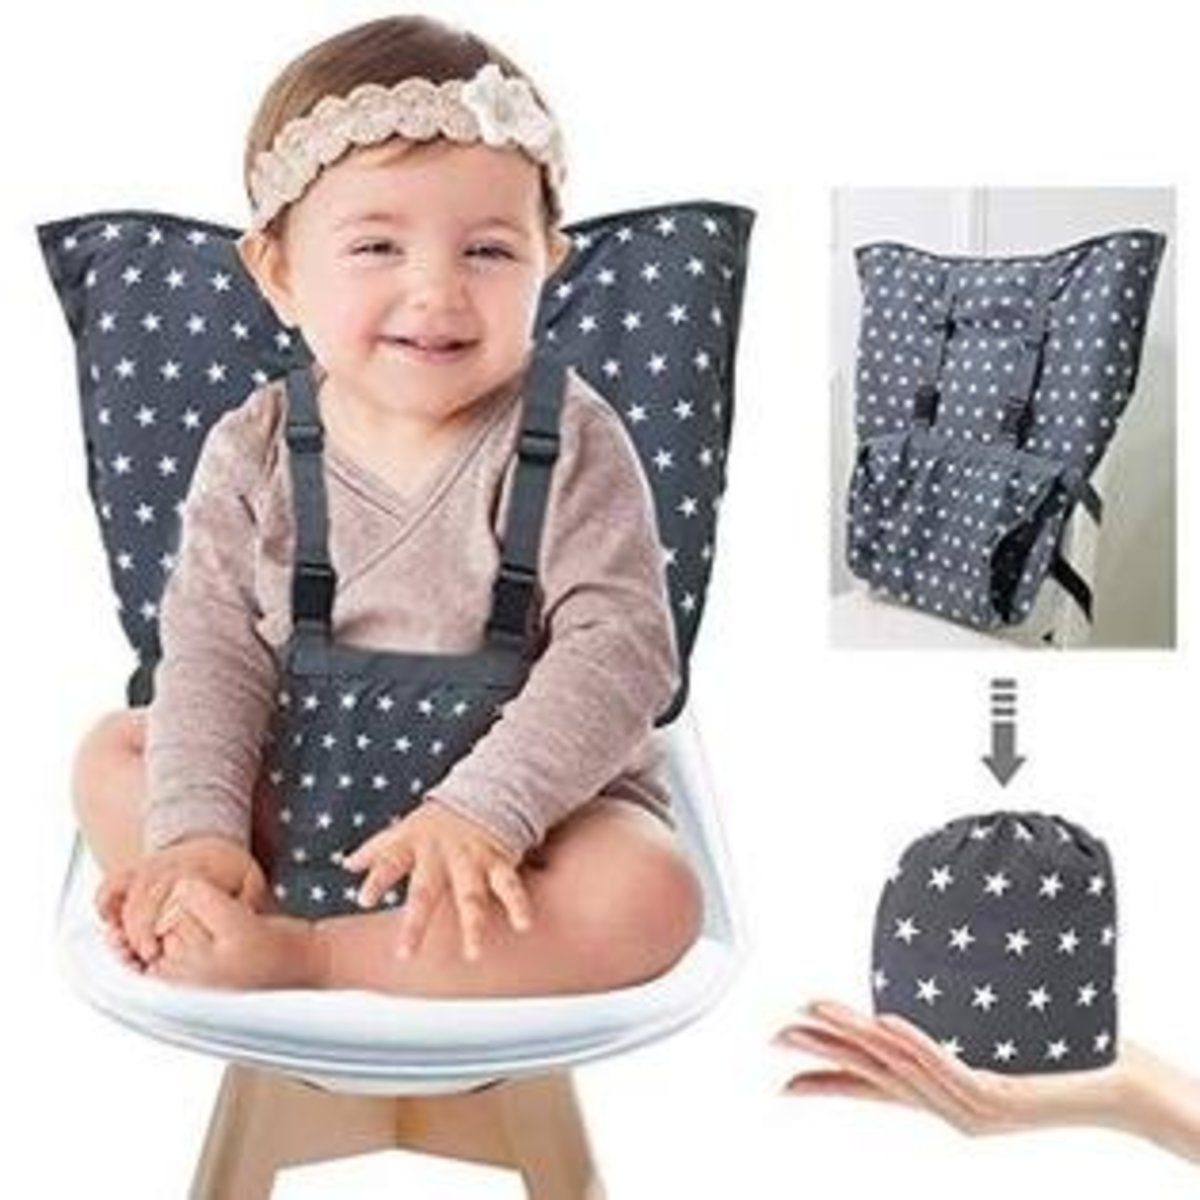 Baby Carrying Seat/Toddler Safe Cloth Chair Cover (Star)